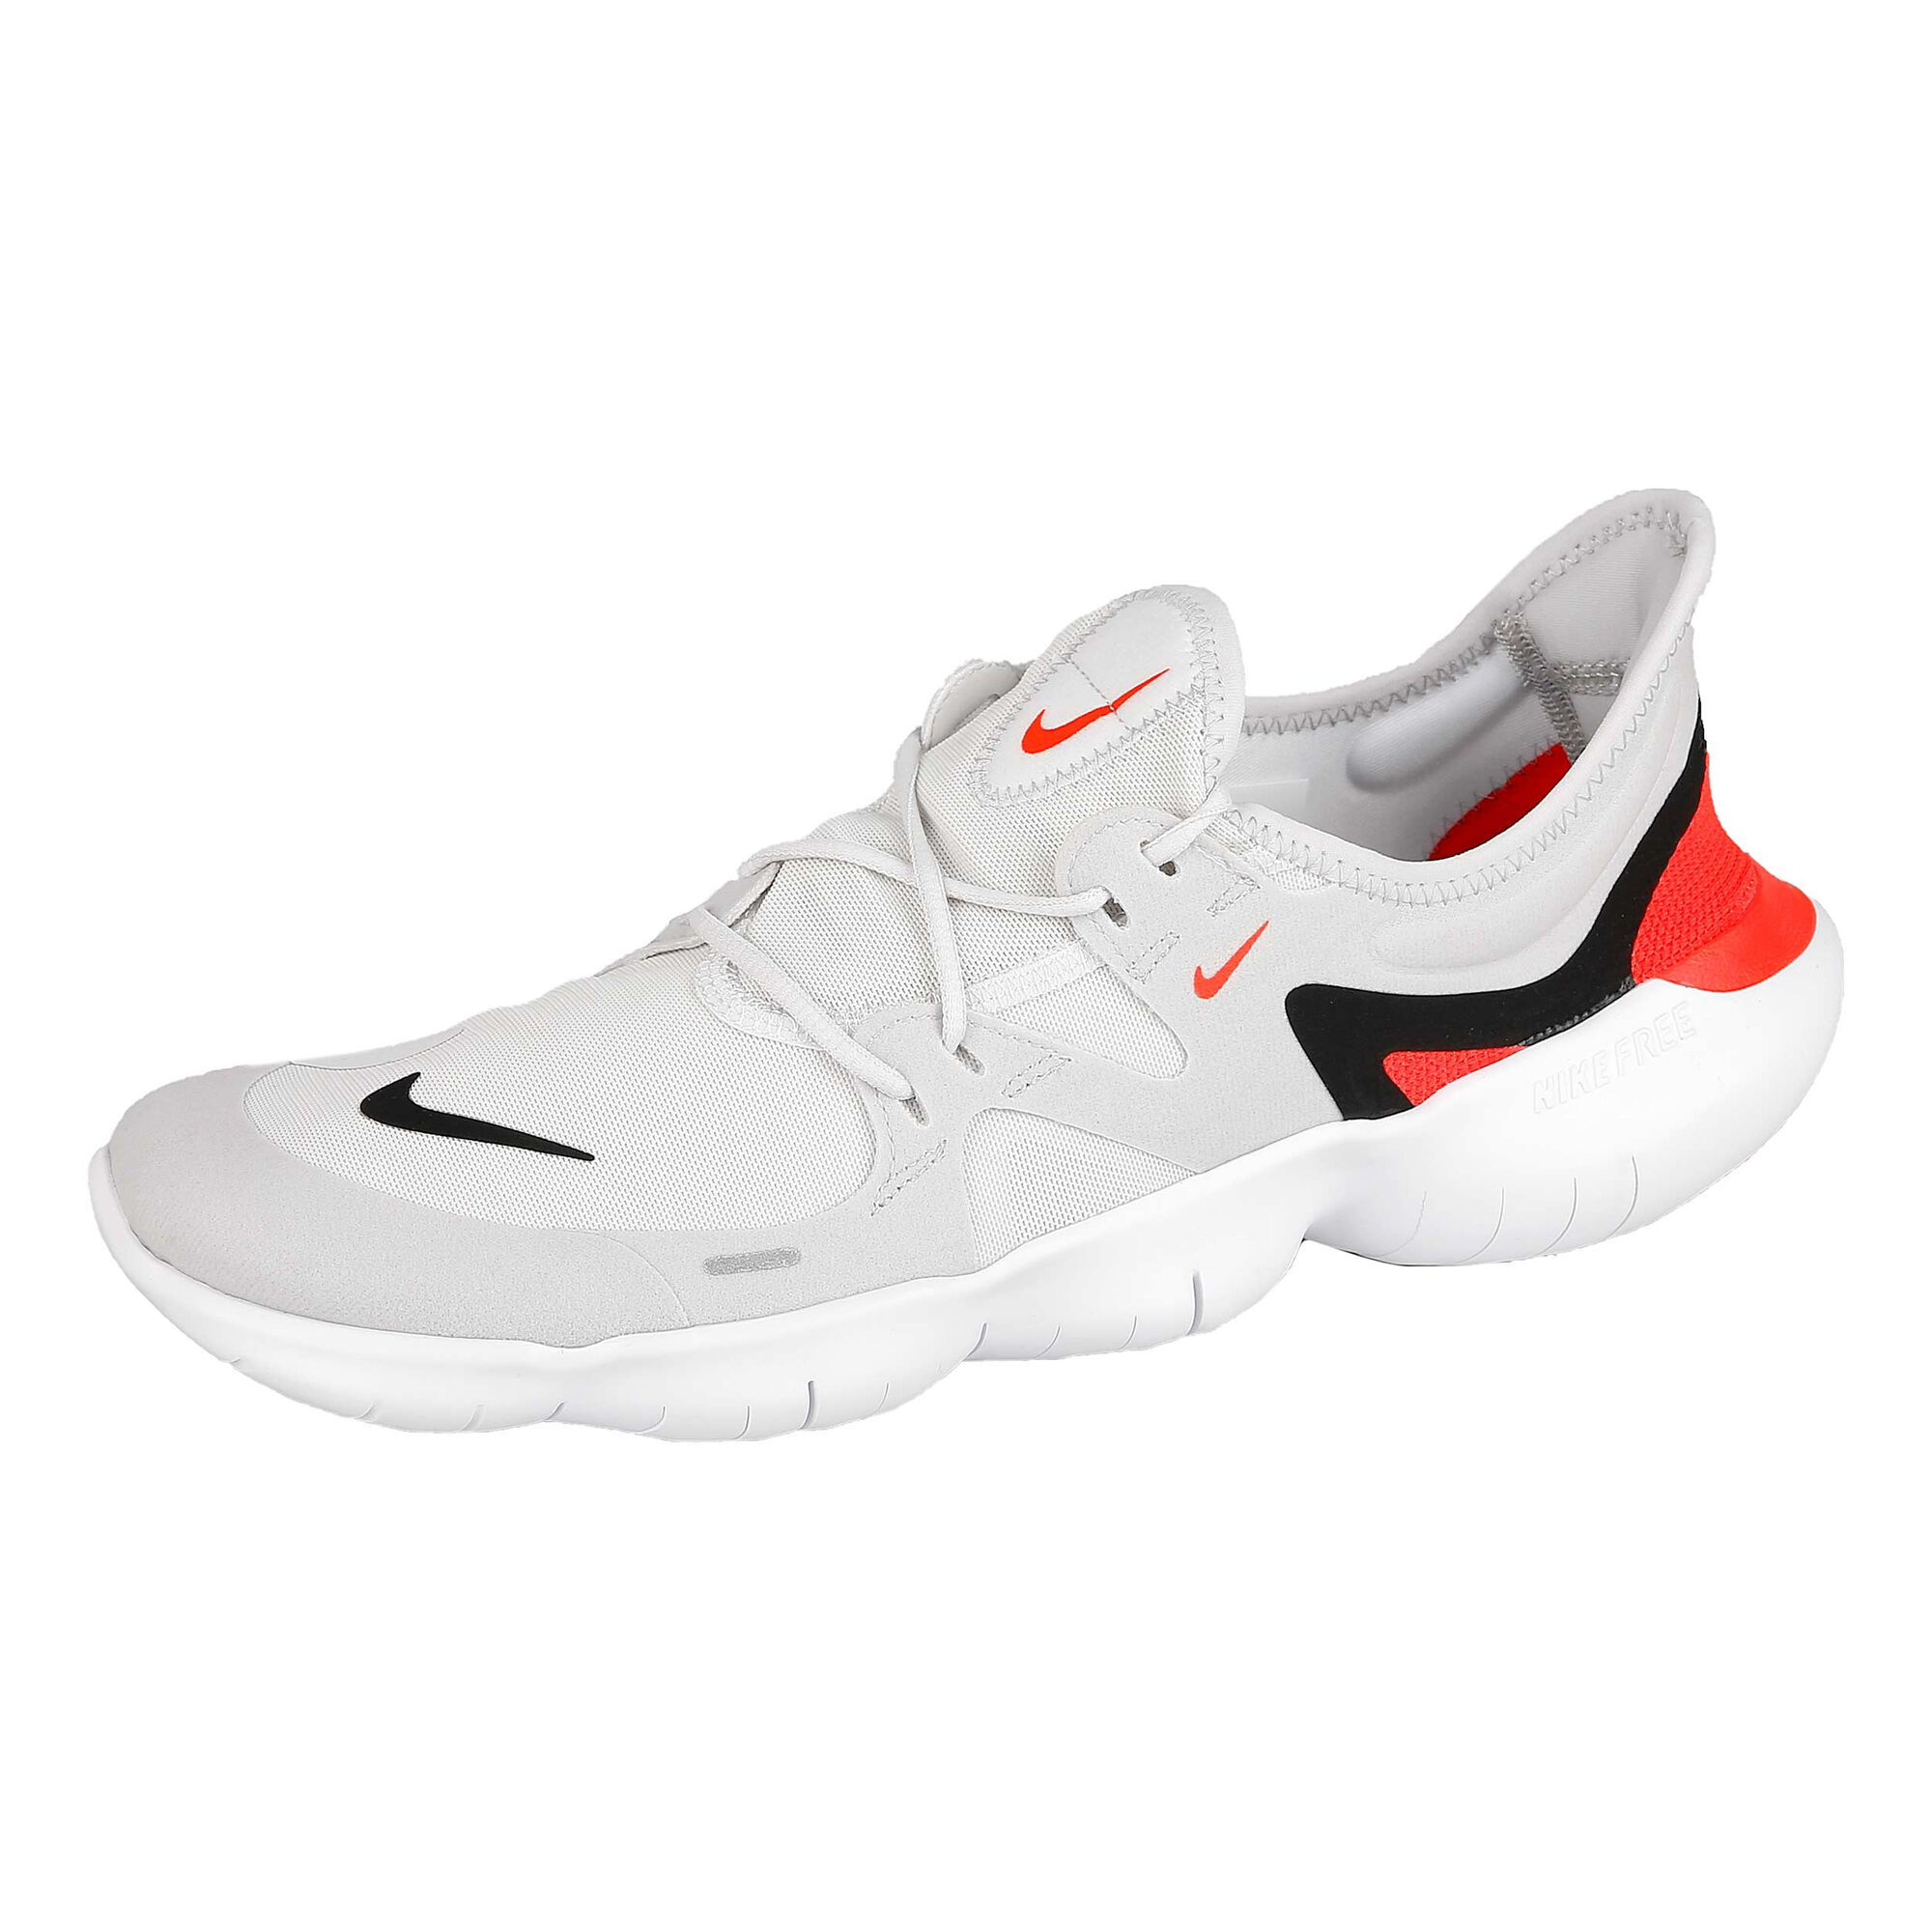 timeless design 2bfbe 038d6 Nike  Nike  Nike  Nike  Nike. Free Run 5.0 Men ...